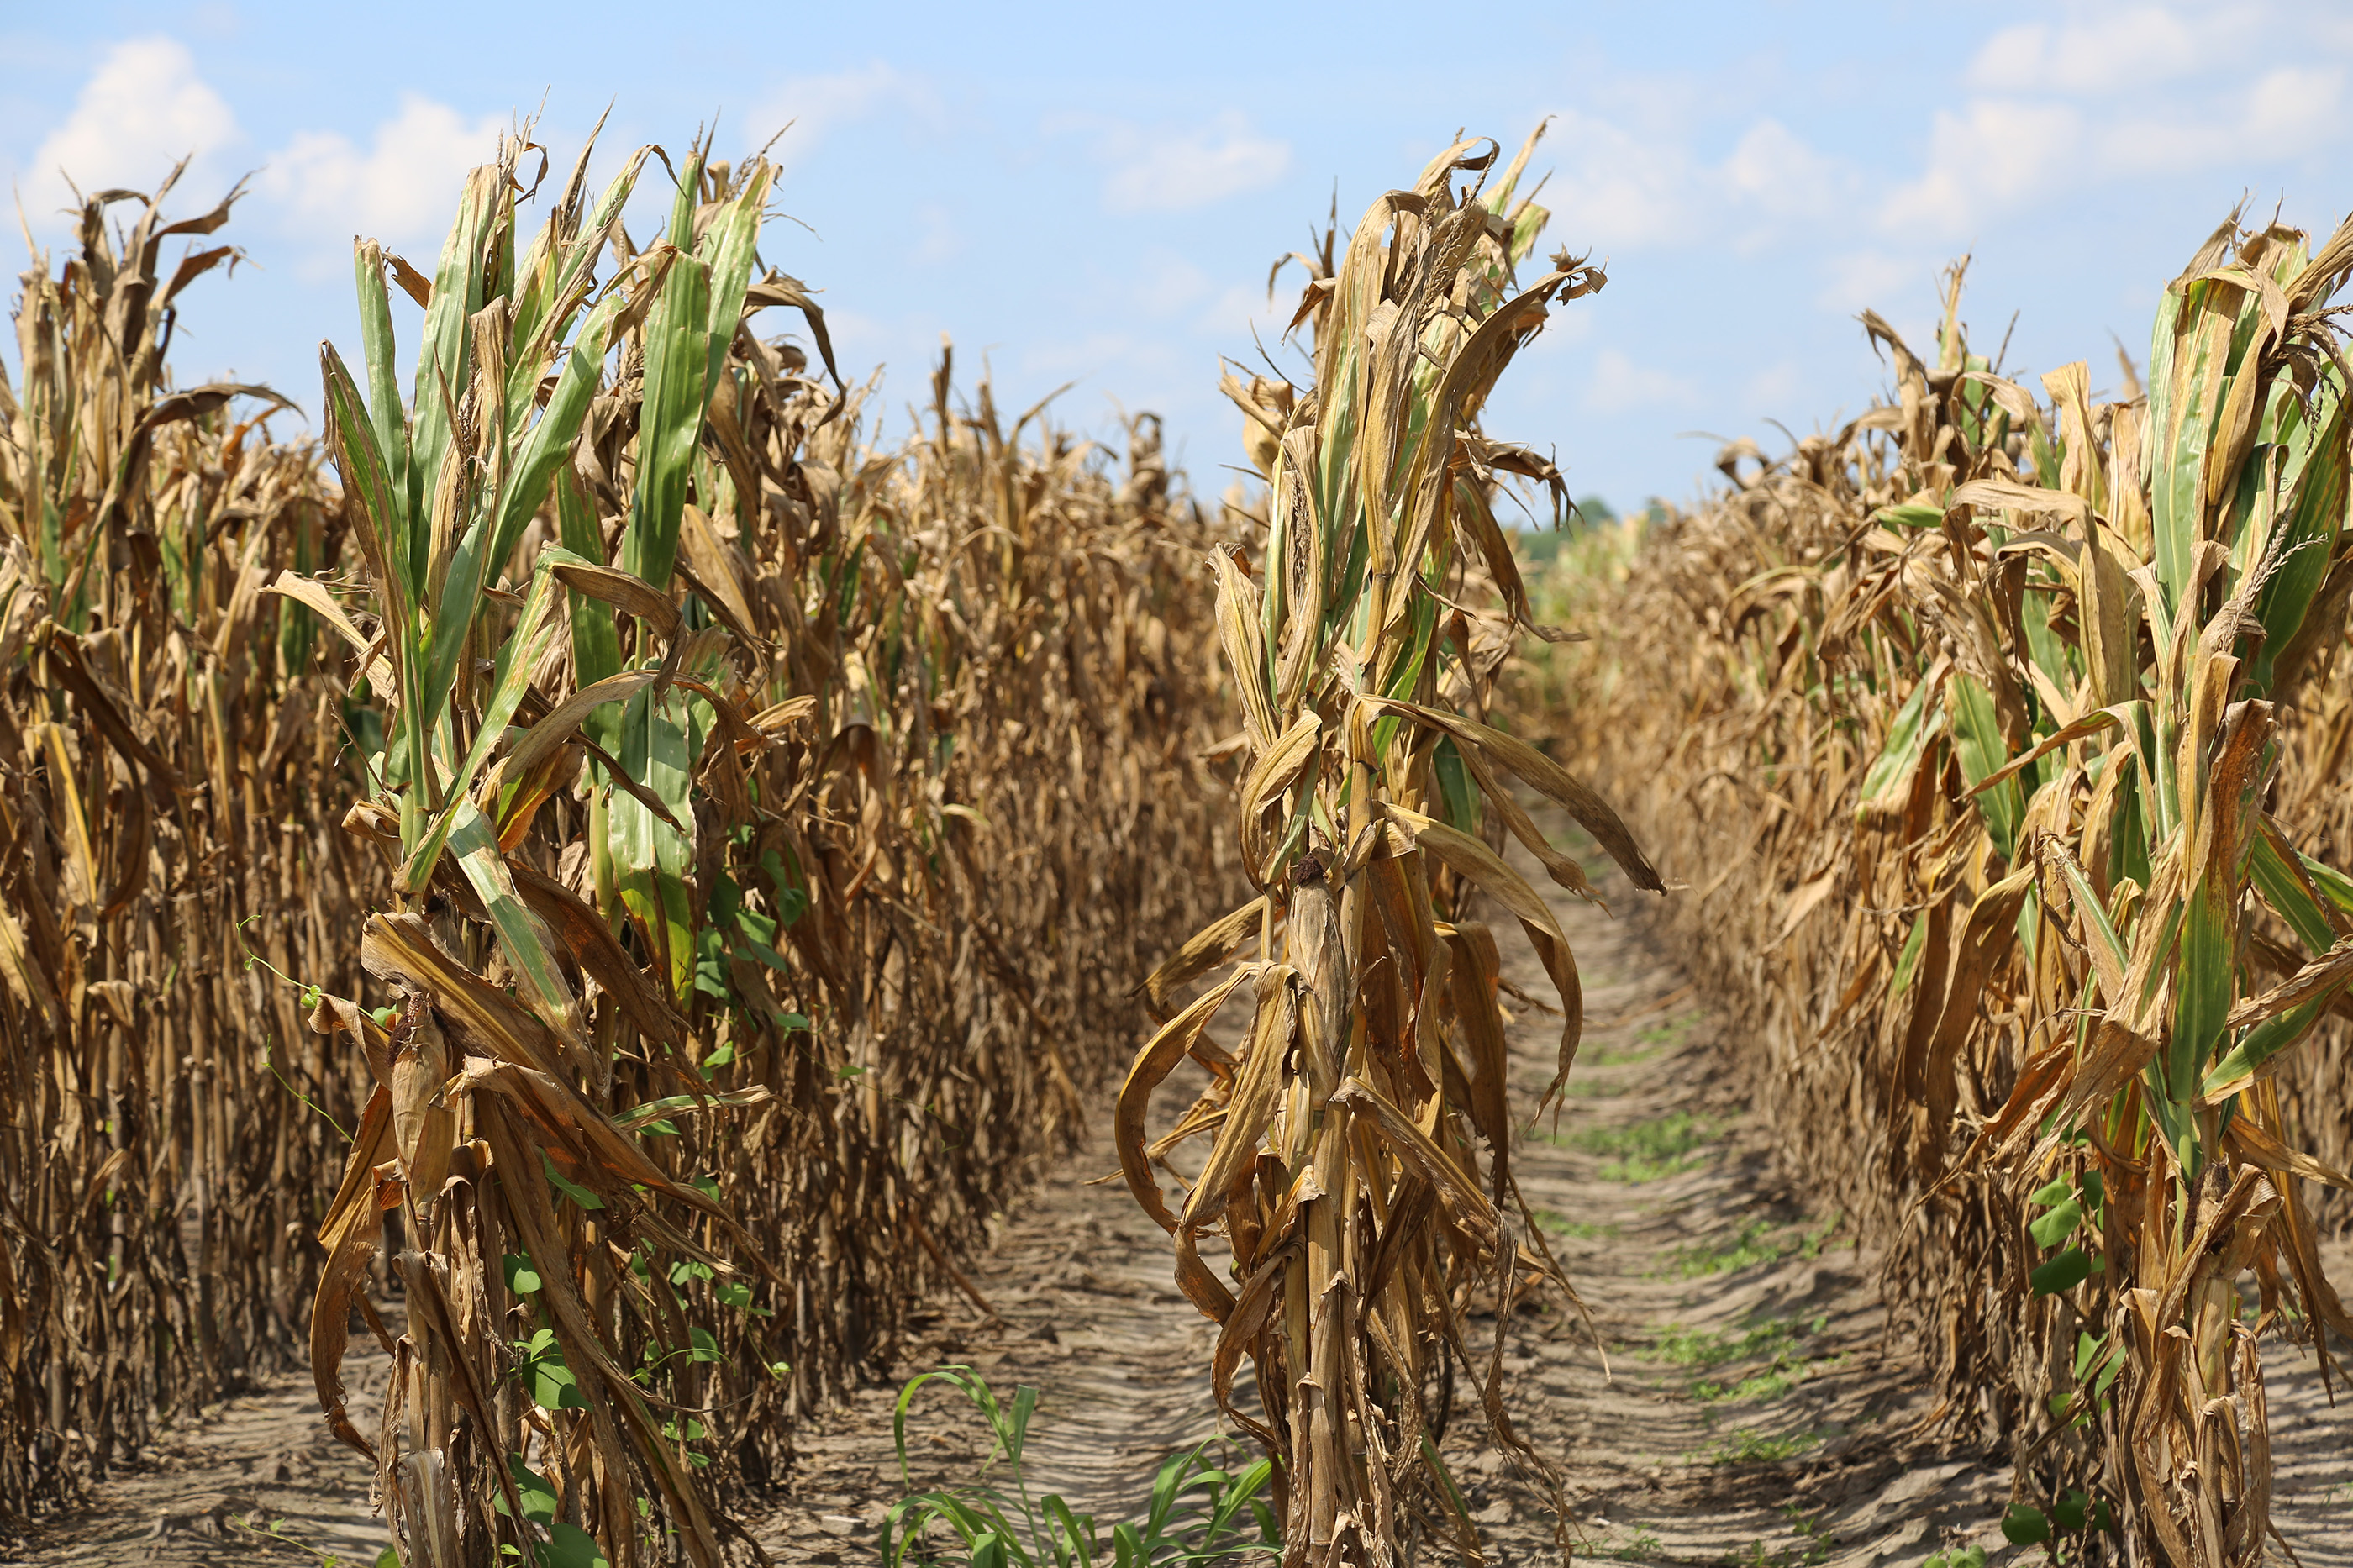 """According to this year's """"UGA Extension Corn Production Guide,"""" corn needs the most water — approximately 0.33 inches per day — during pollination. While producers prefer Mother Nature to supply the needed moisture, irrigation systems are in place to satisfy water requirements not met by natural precipitation."""